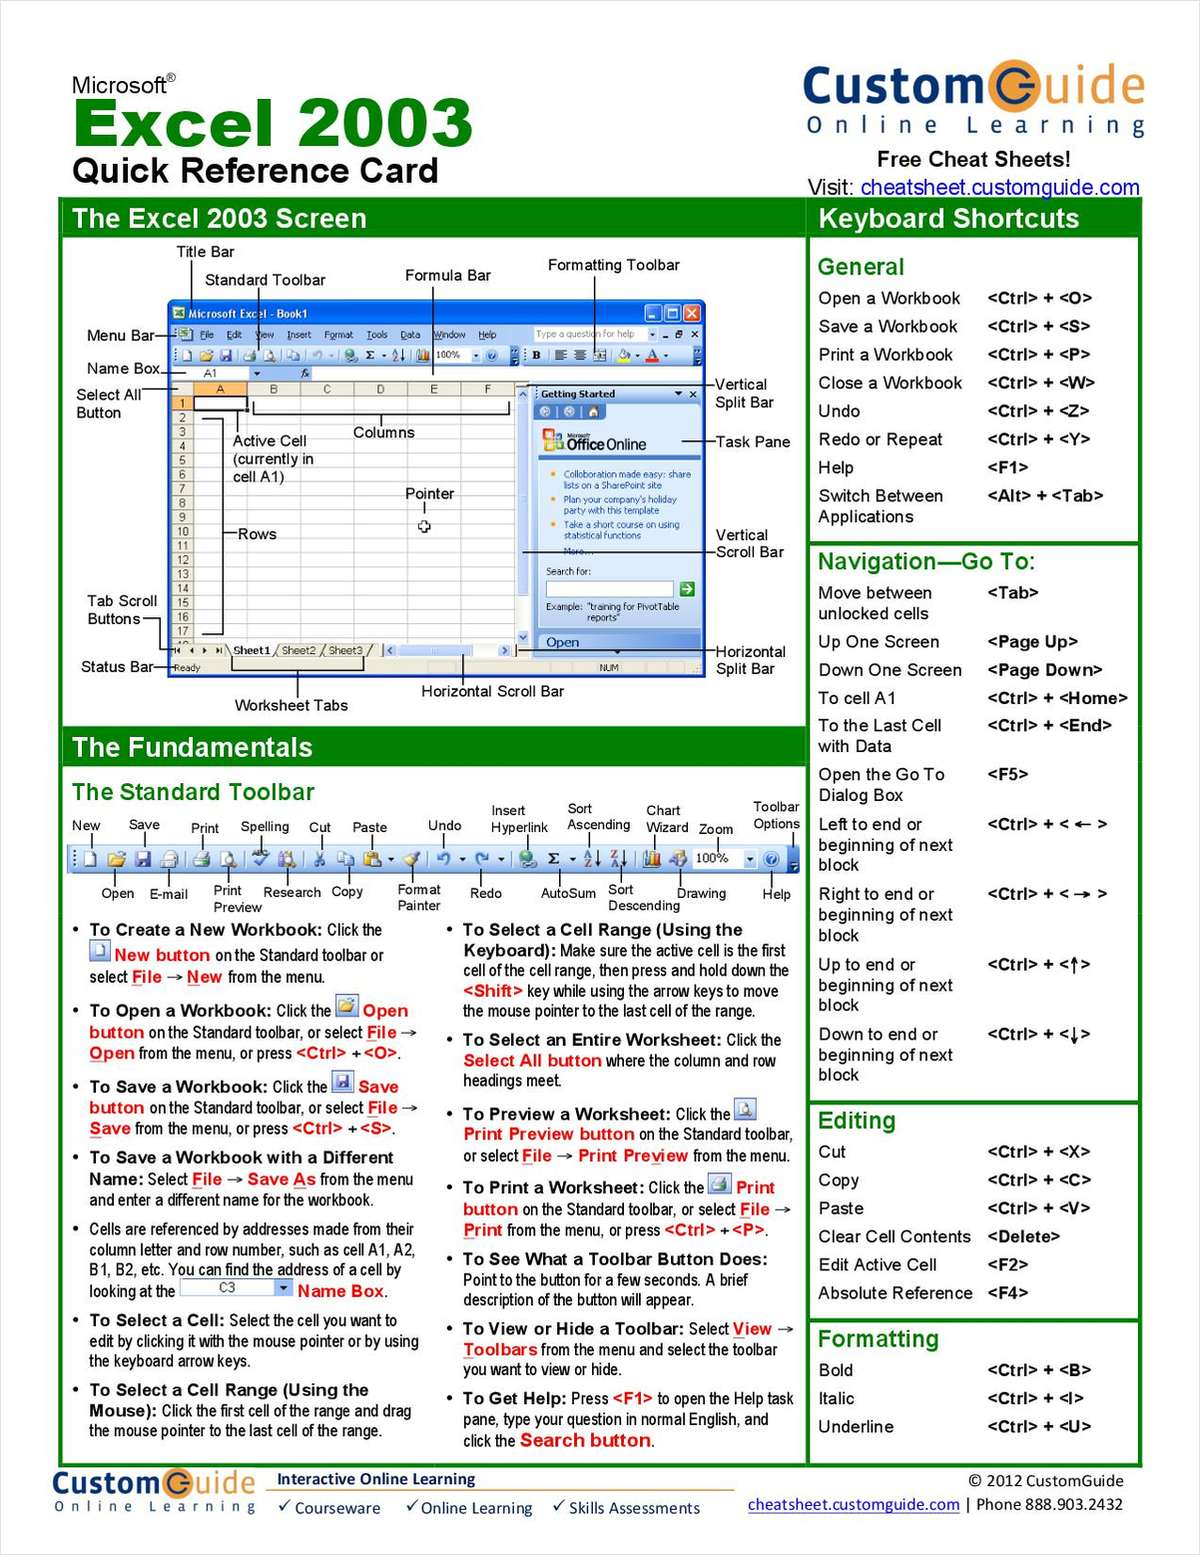 Microsoft Excel 2003 -- Free Quick Reference Card